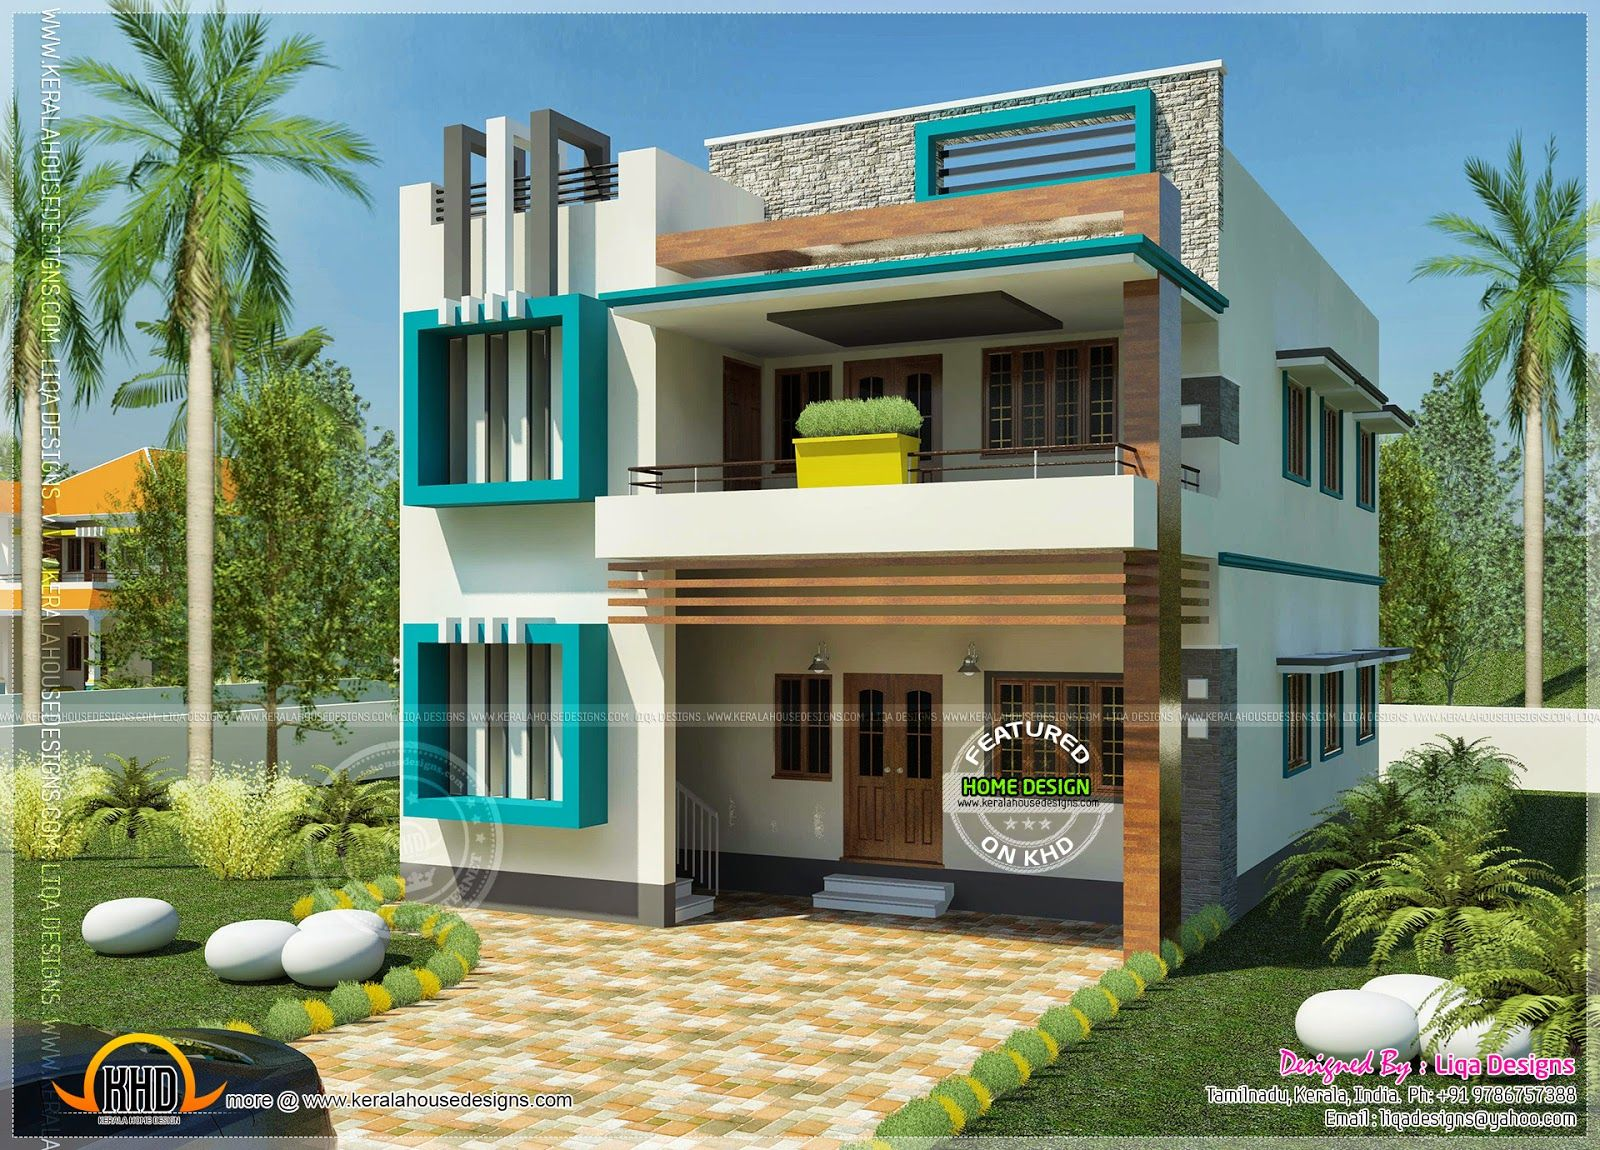 Imposing Ideas Simple Home Design Modern Simple Indian House Classic Home  Designs In India  Gallery. Imposing Ideas Simple Home Design Modern Simple Indian House